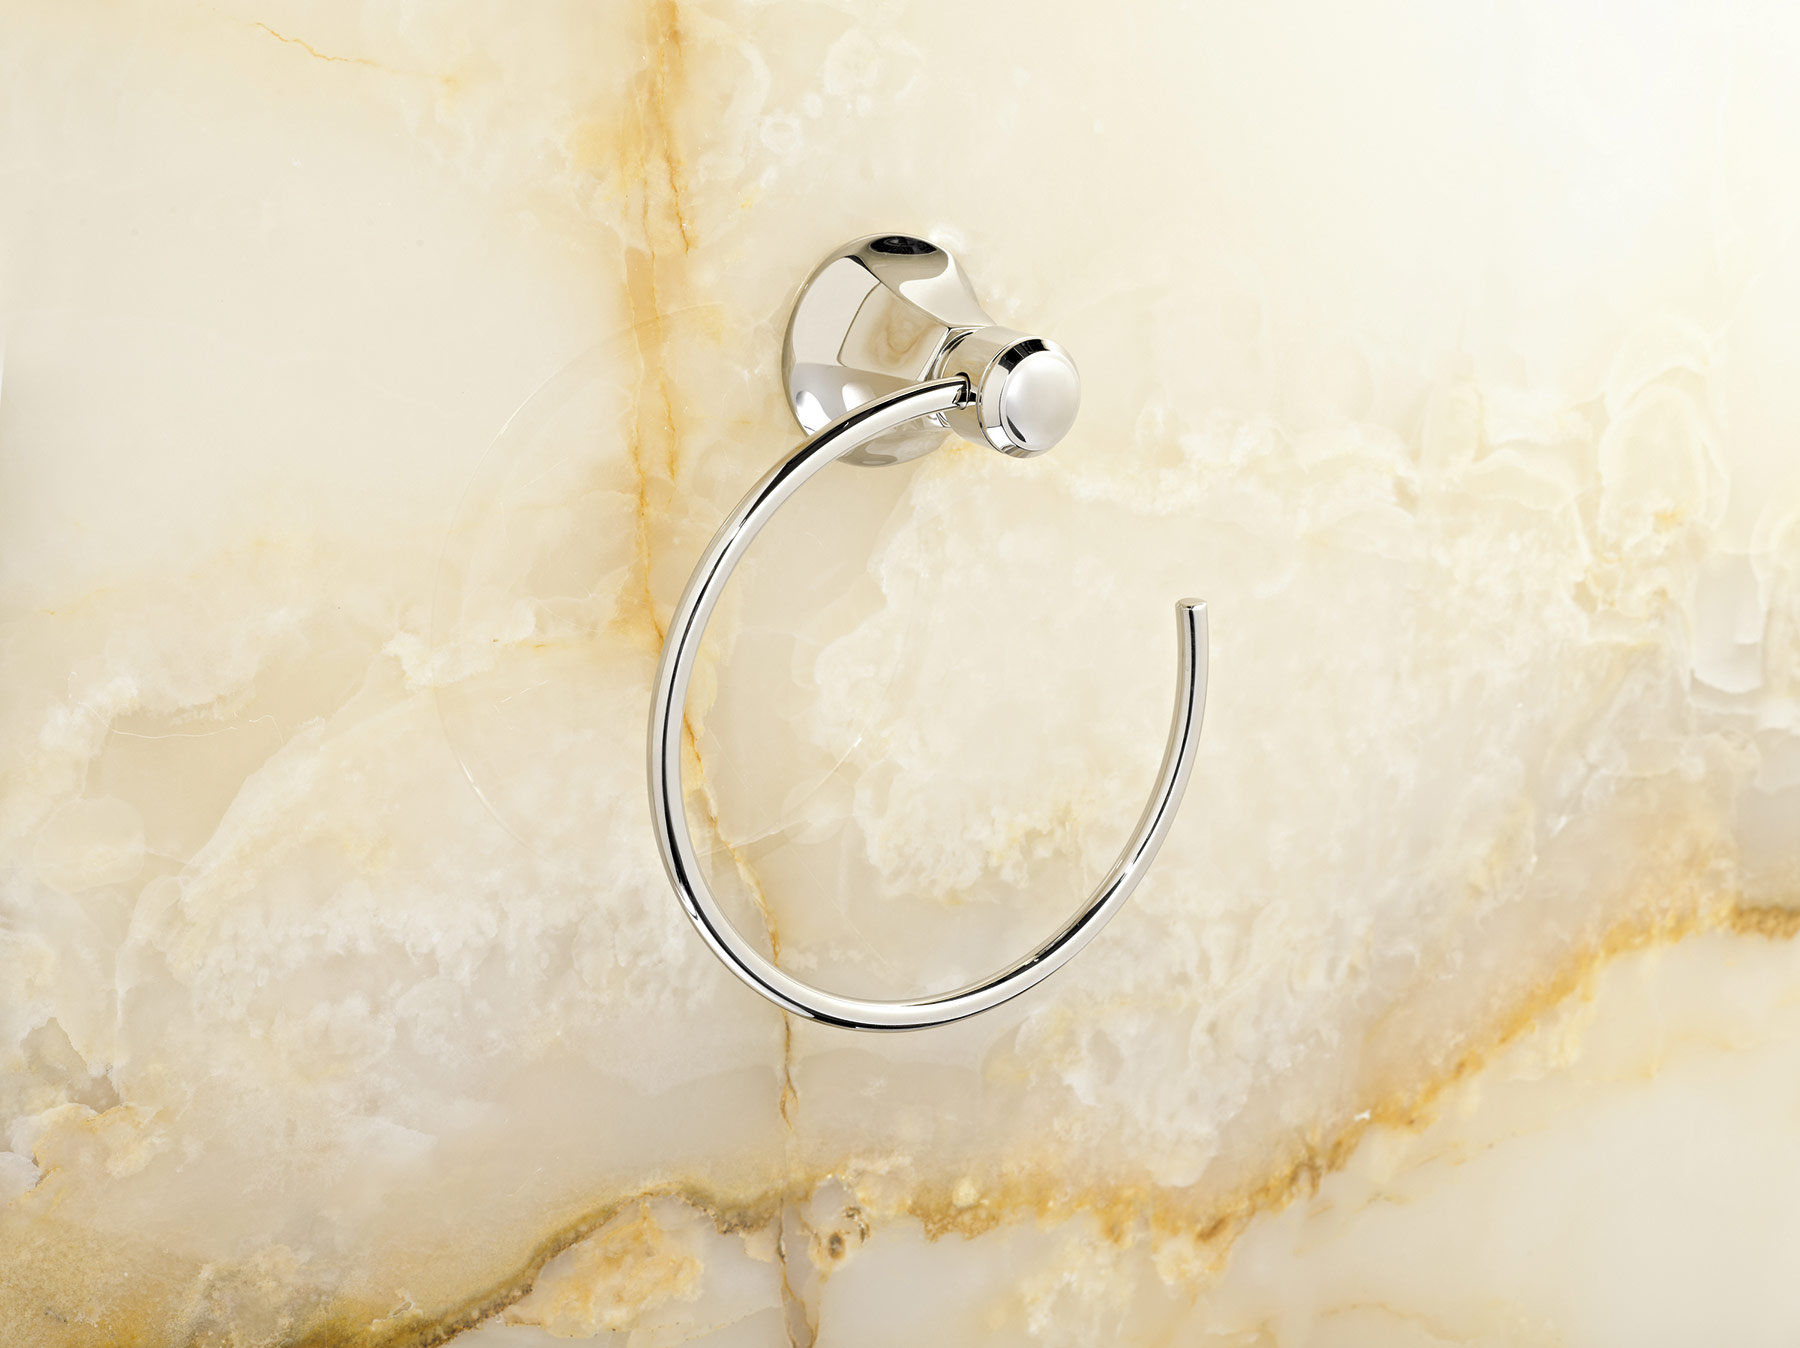 Traditional Ascott Wall Mount Towel Ring